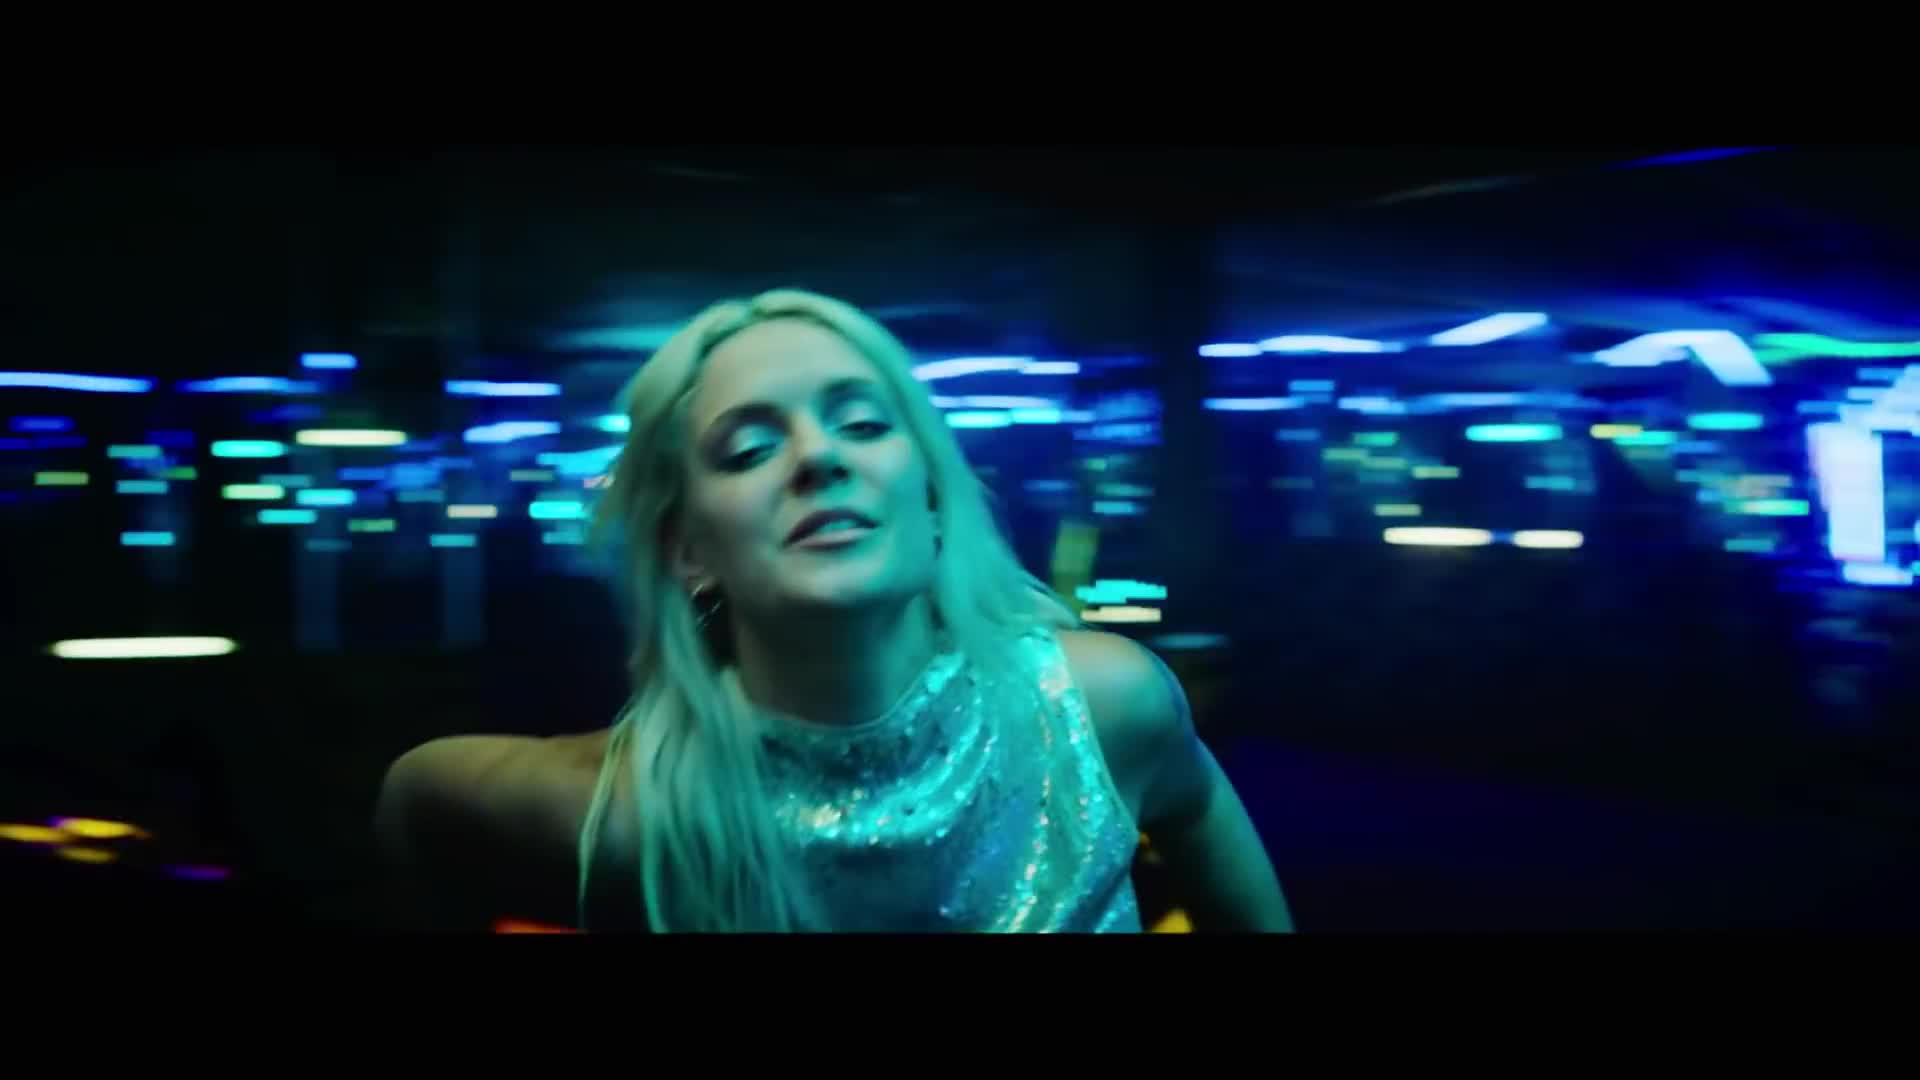 Tove Lo - Cycles GIFs